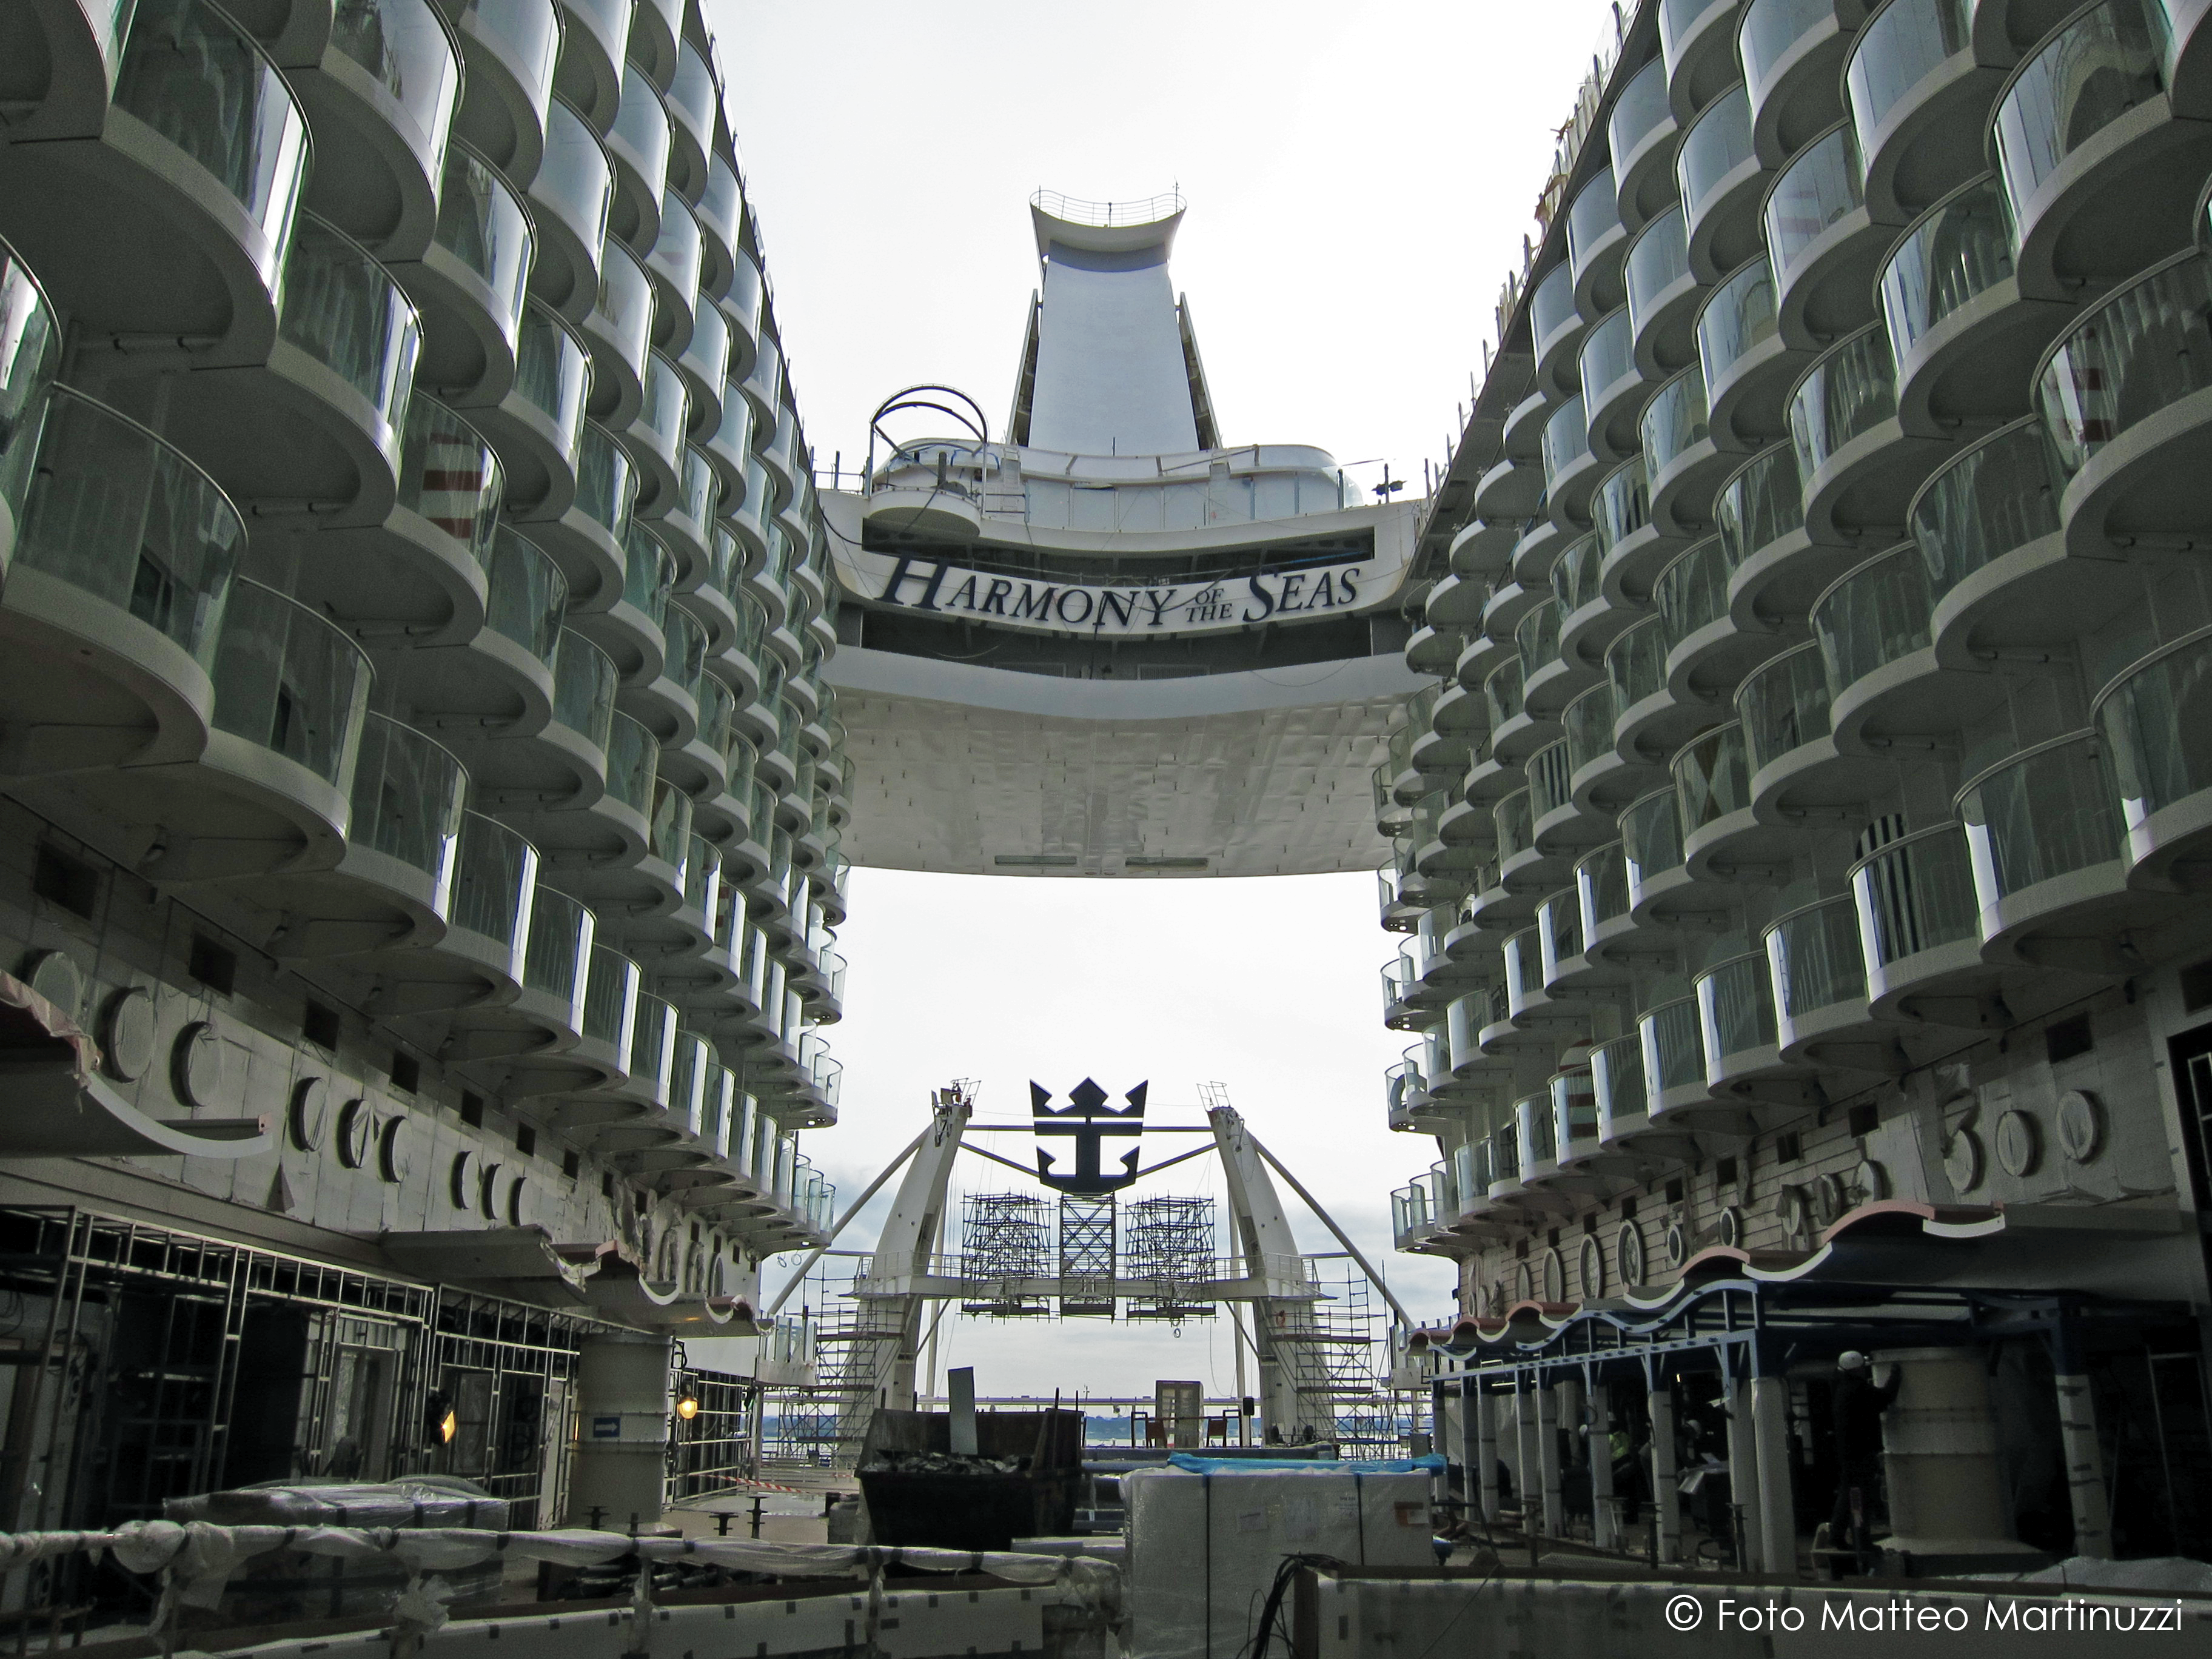 Harmony of the Seas in cantiere by Matteo Martinuzzi